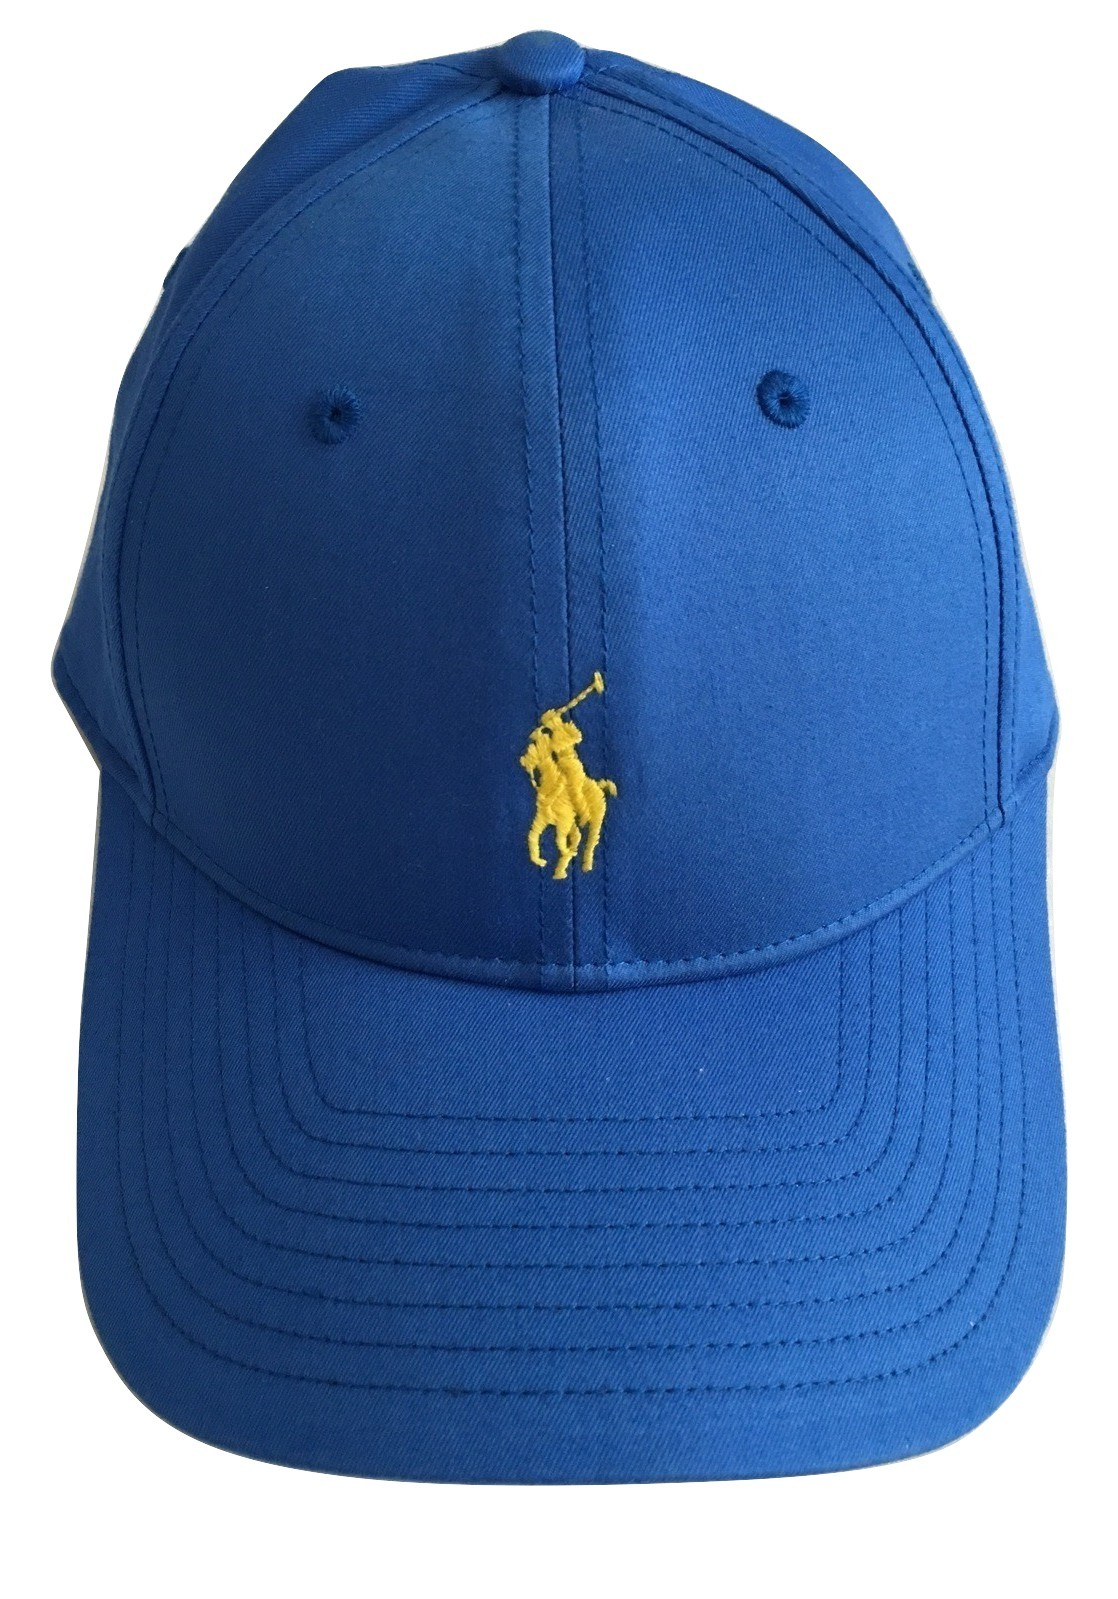 d0f43ea4d97 Img 3095869371 1517010159. Img 3095869371 1517010159. Previous. NWT Polo  Ralph Lauren Men s Performance Baseline Baseball Cap One Size Fits All